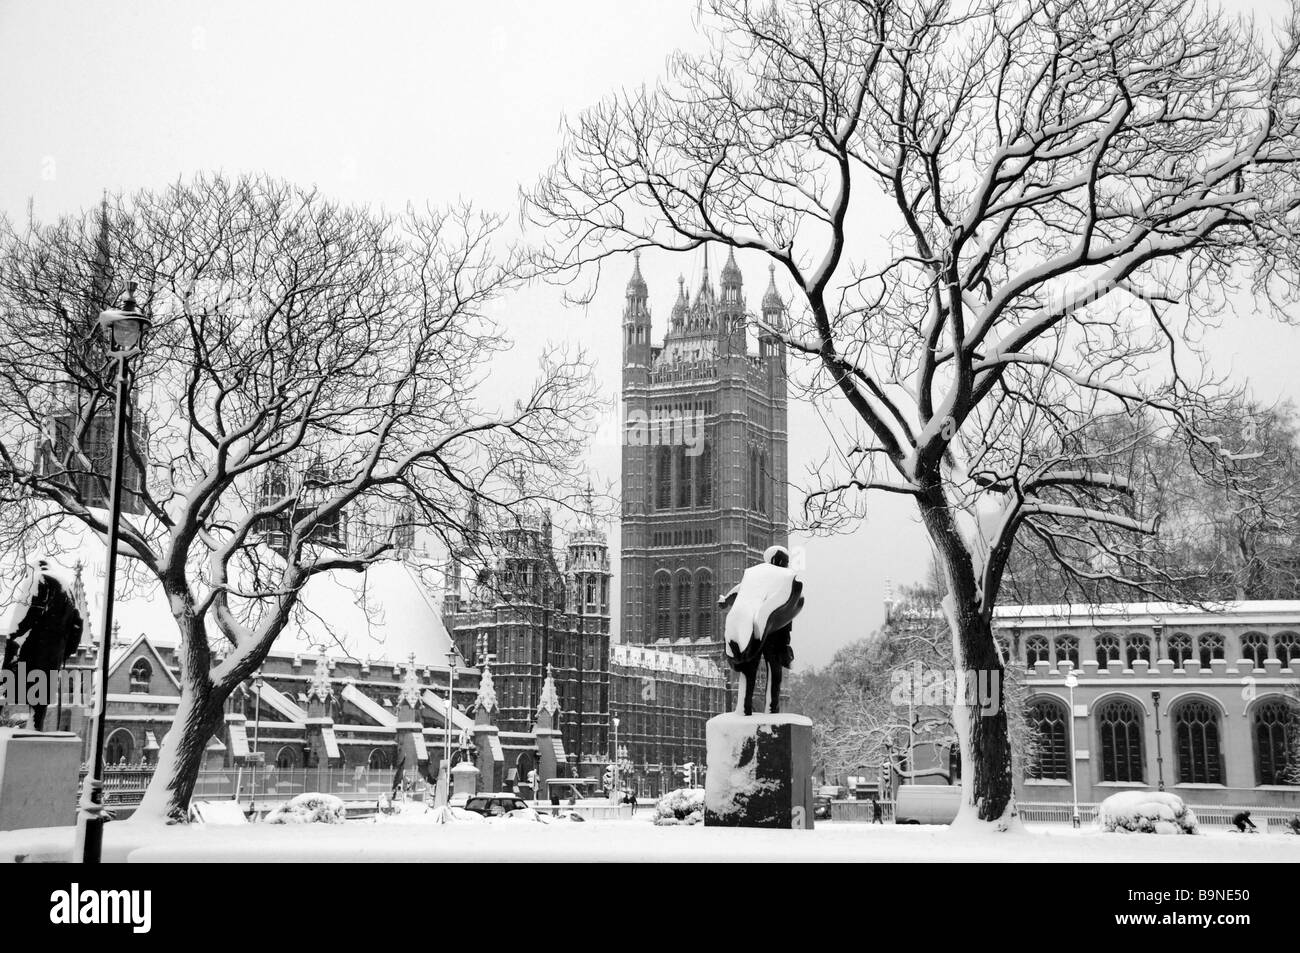 Westminster, London blanketed in snow February 2009 - Stock Image